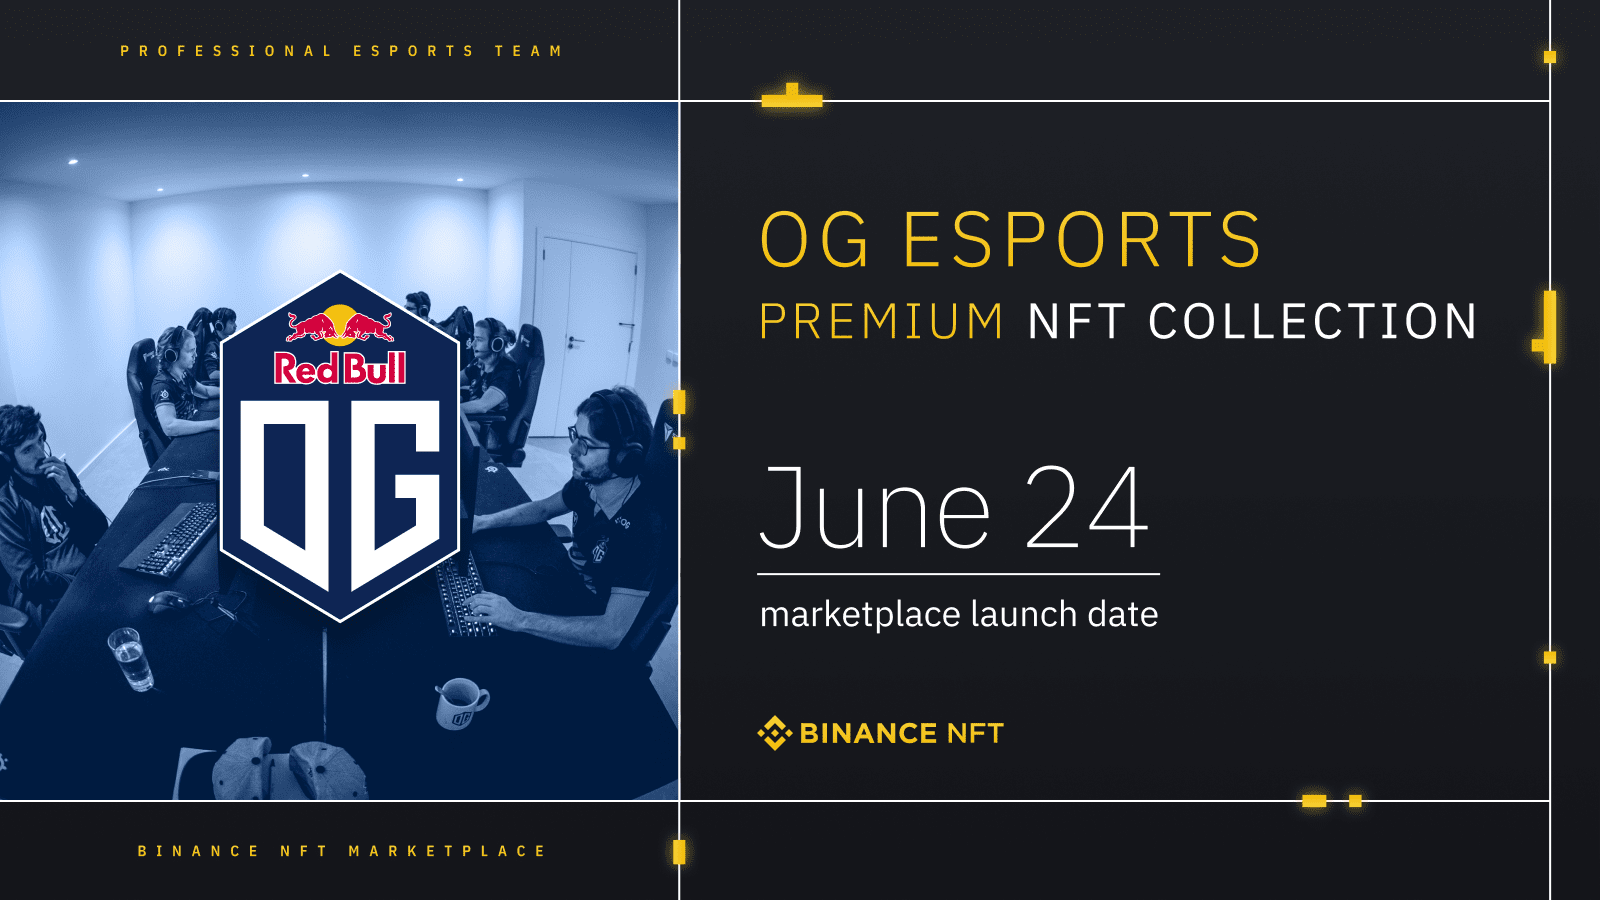 Binance NFT Marketplace Reveals The First Premium ESports Creator: OG ESports Cryptocurrency Trading Signals, Strategies & Templates | DexStrats